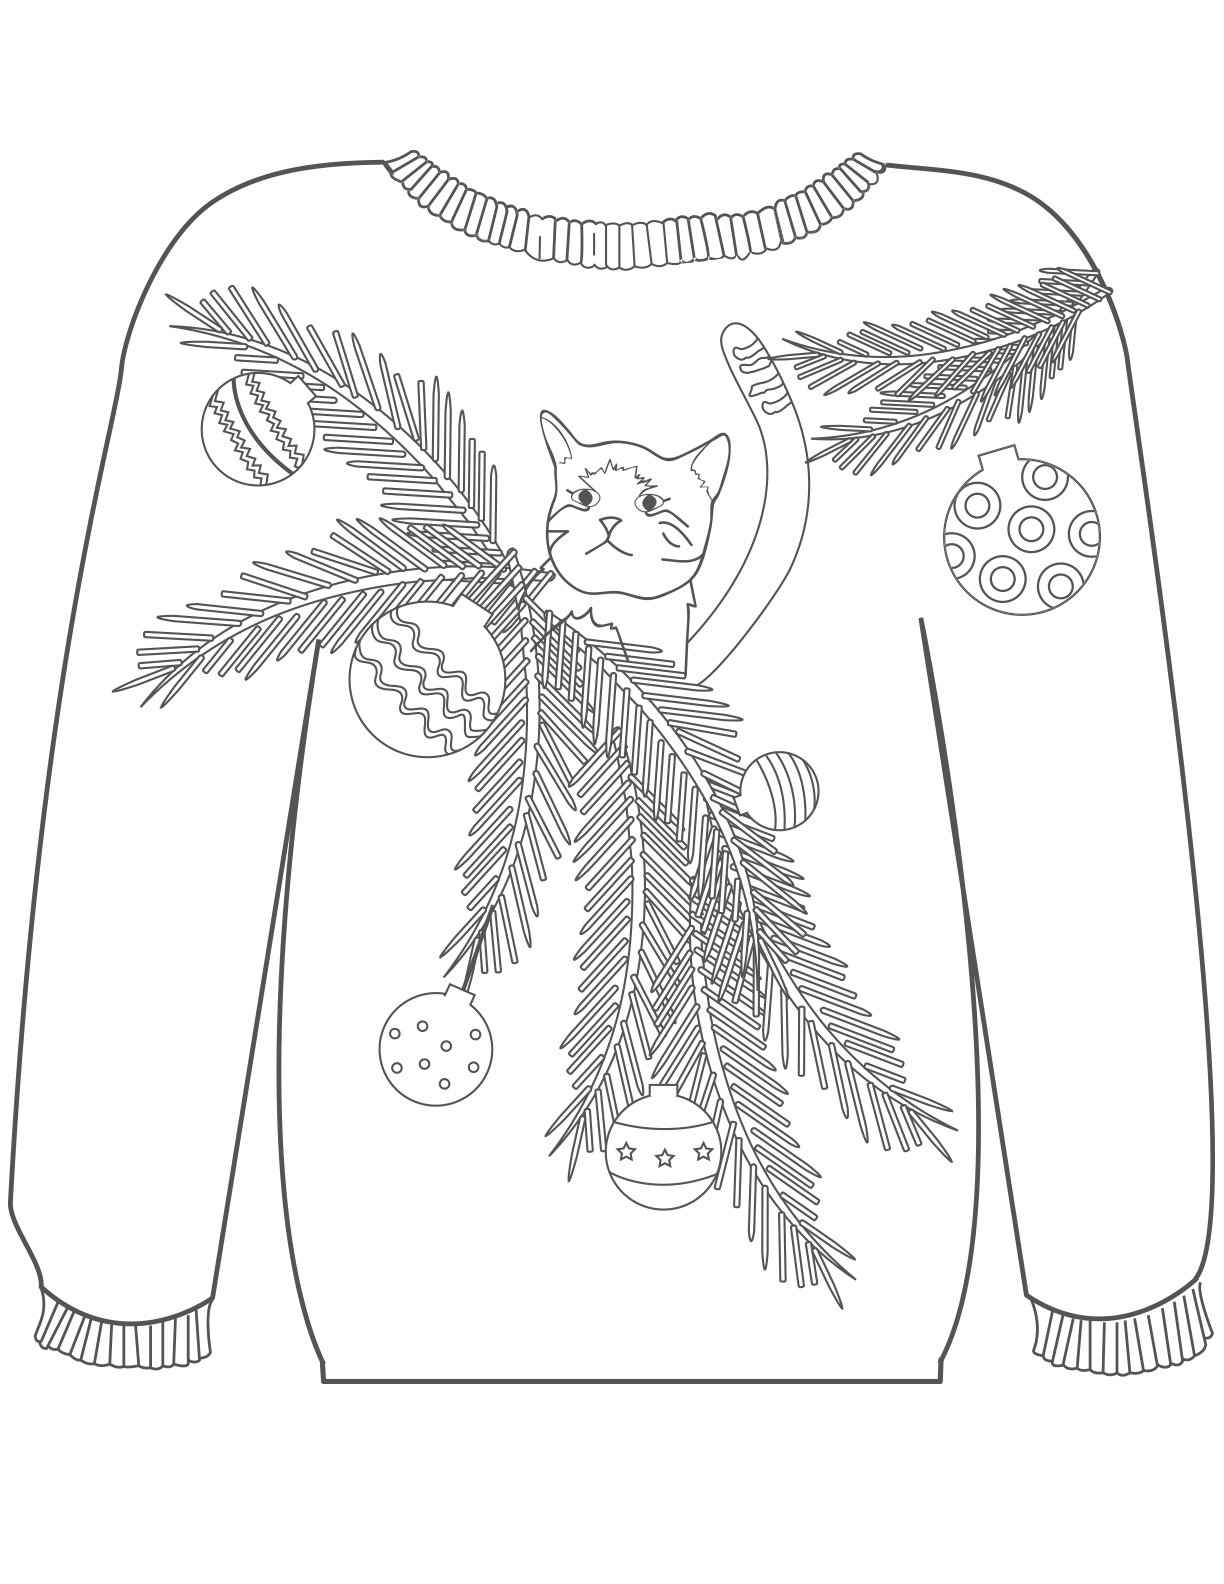 Sweater Technical Drawing